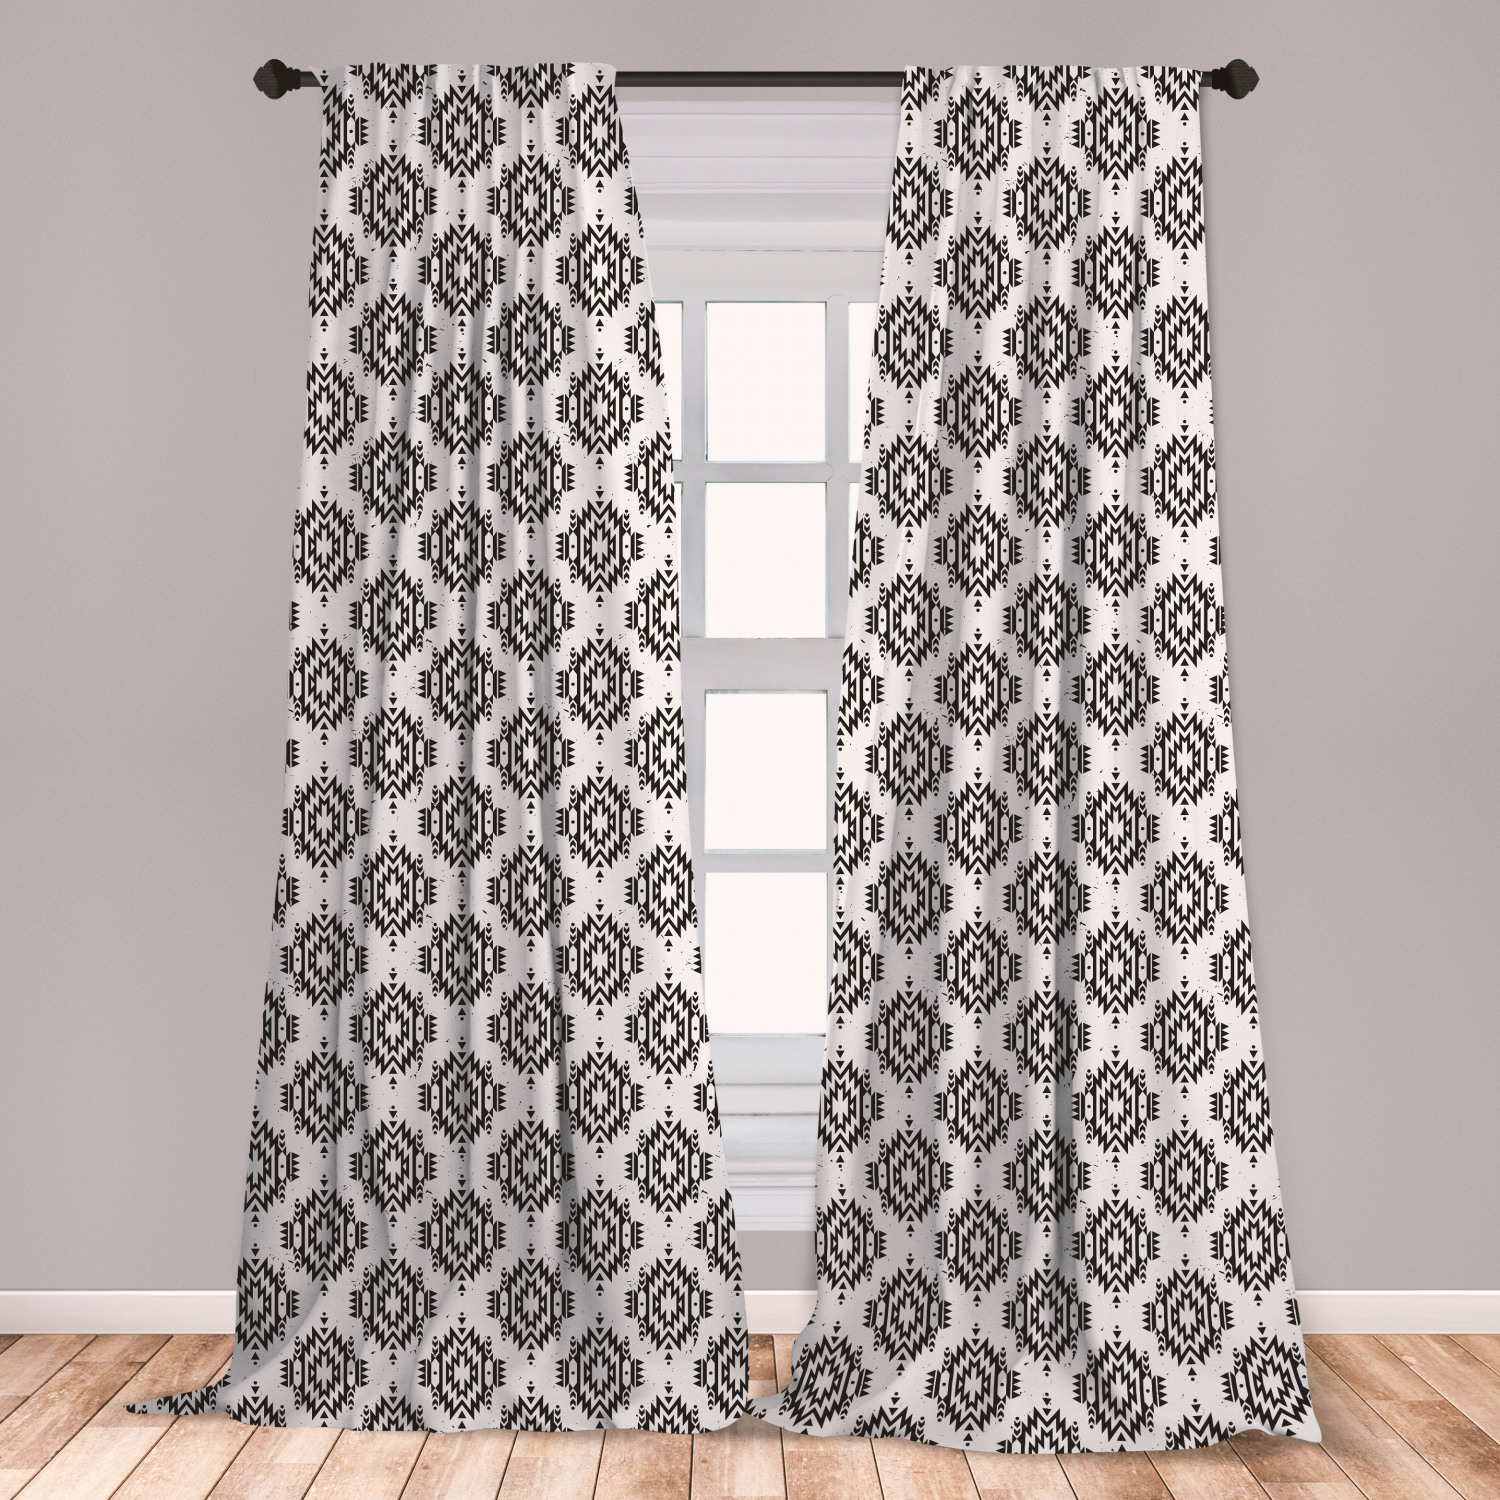 Tribal Curtains 2 Panels Set Grunge Monochrome Motifs With Cultural Origins Indigenous Abstract Window Drapes For Living Room Bedroom Black White By Ambesonne Walmart Com Walmart Com